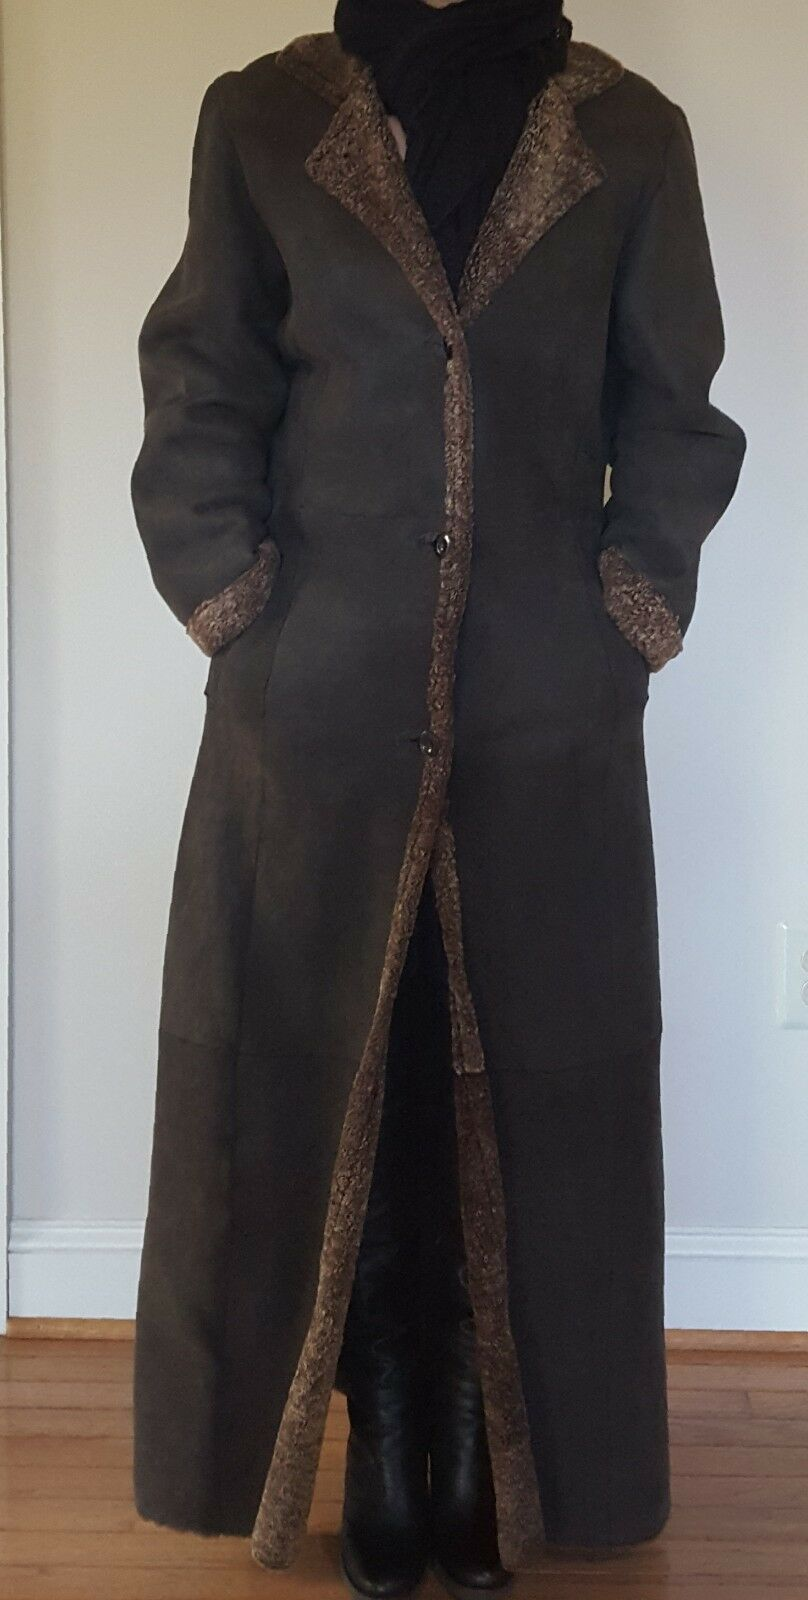 Shearlings long coat women winter size Small. Perfect condition